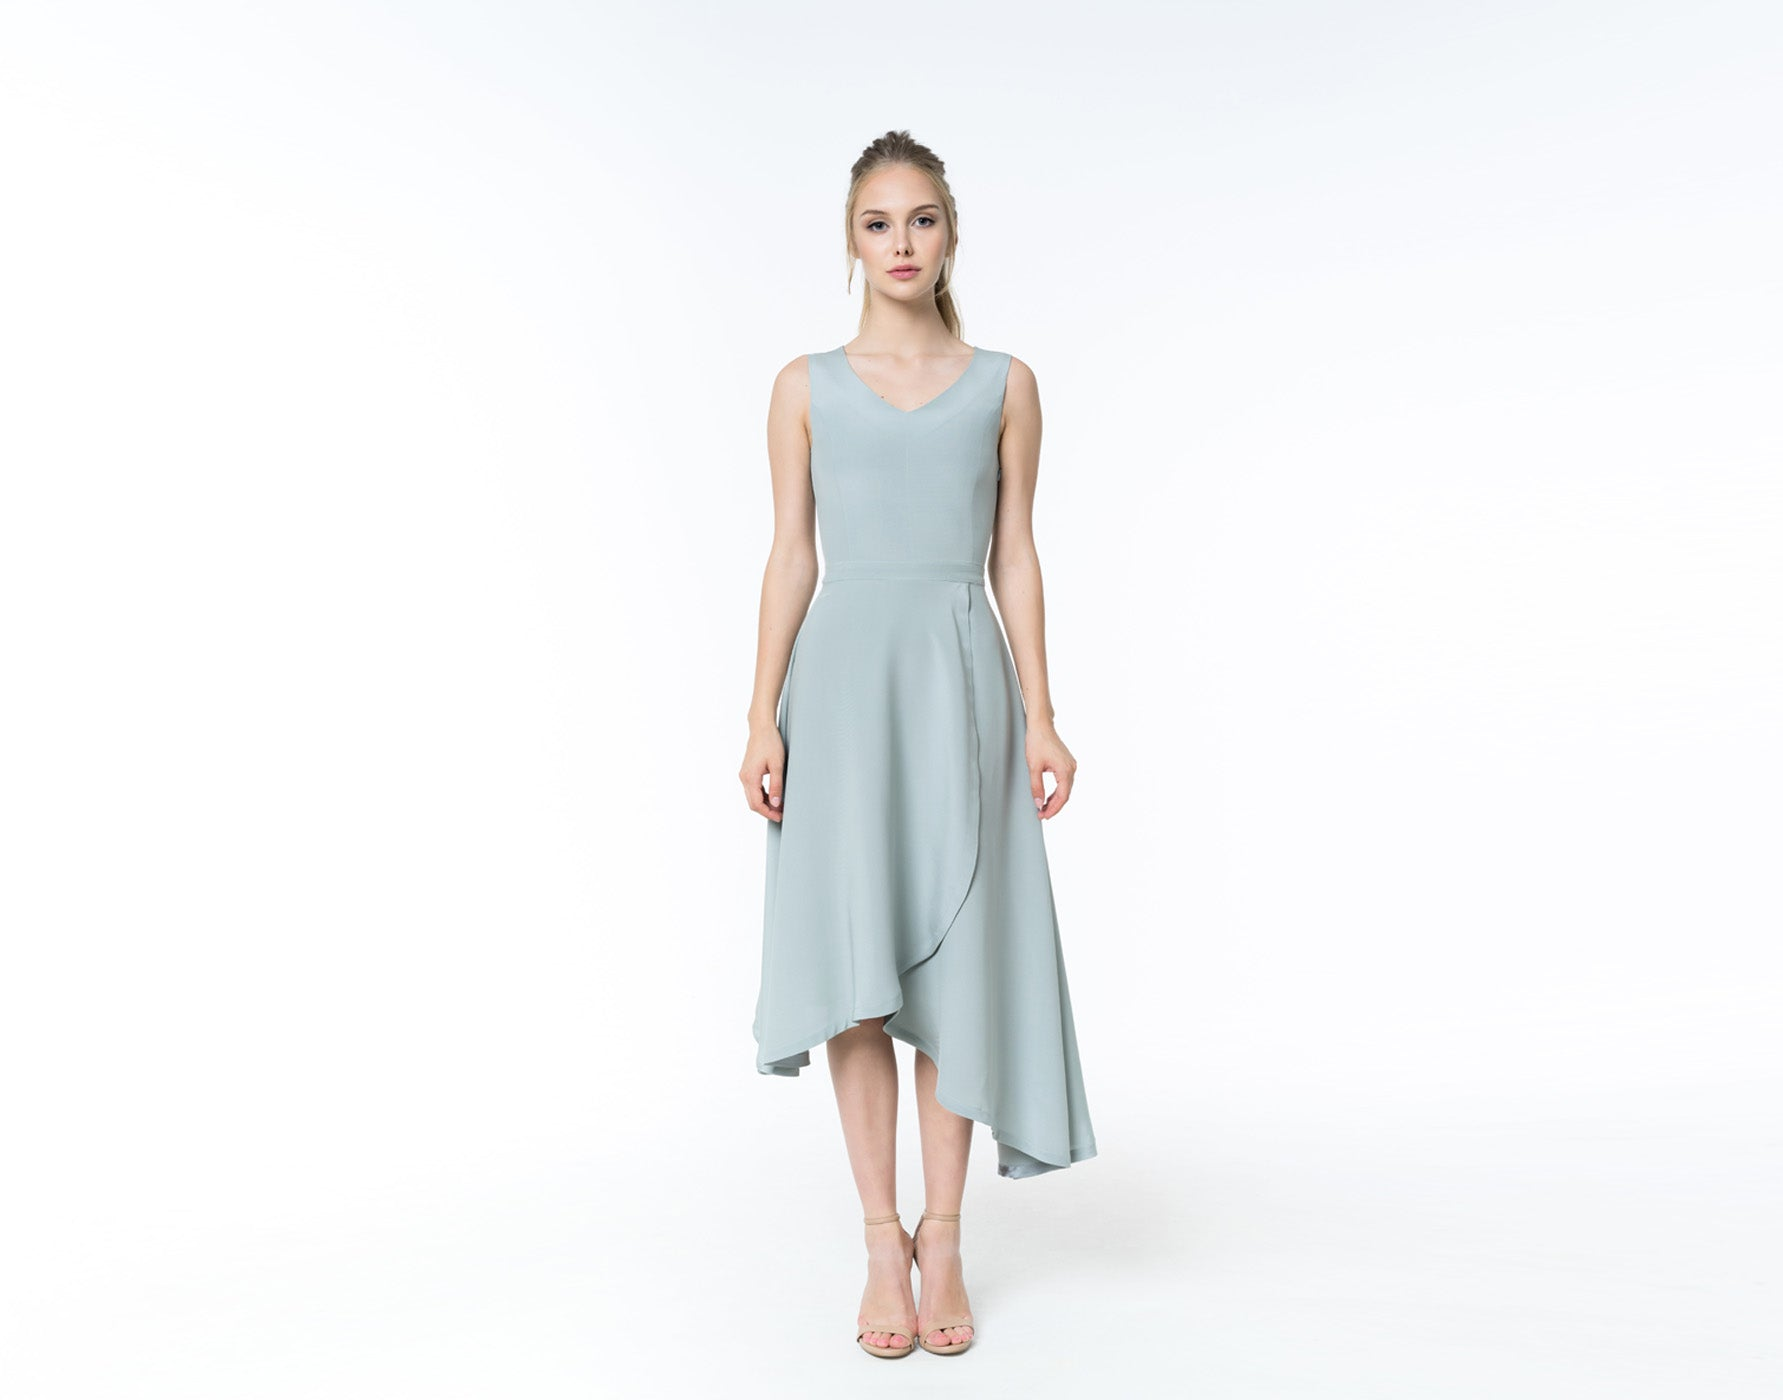 Oxydized green silk dress - Shopyte